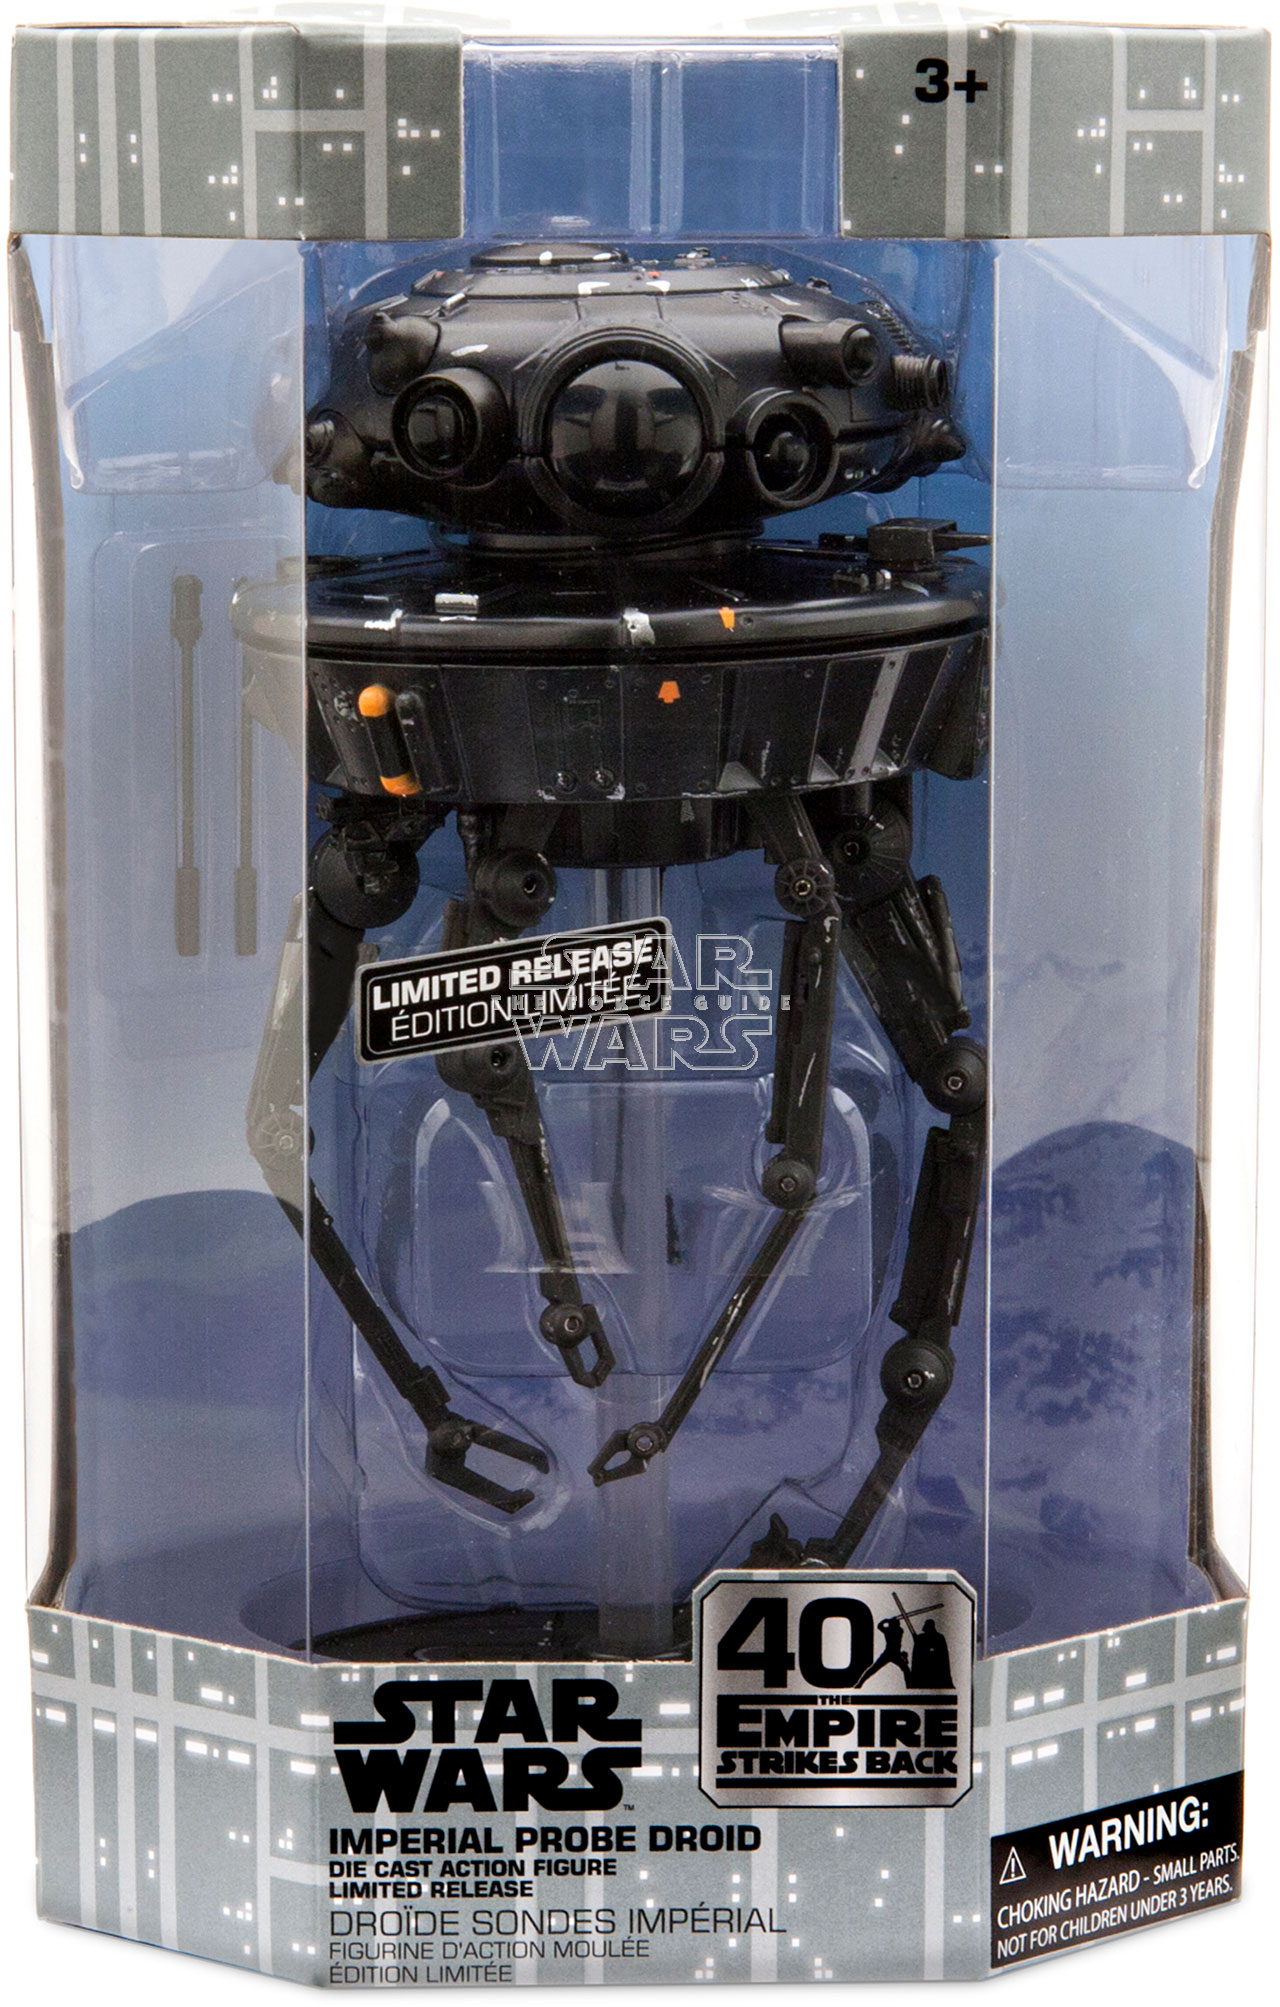 Star Wars Imperial Probe Droid 40th anniversary Disney Limited Edition Die Cast